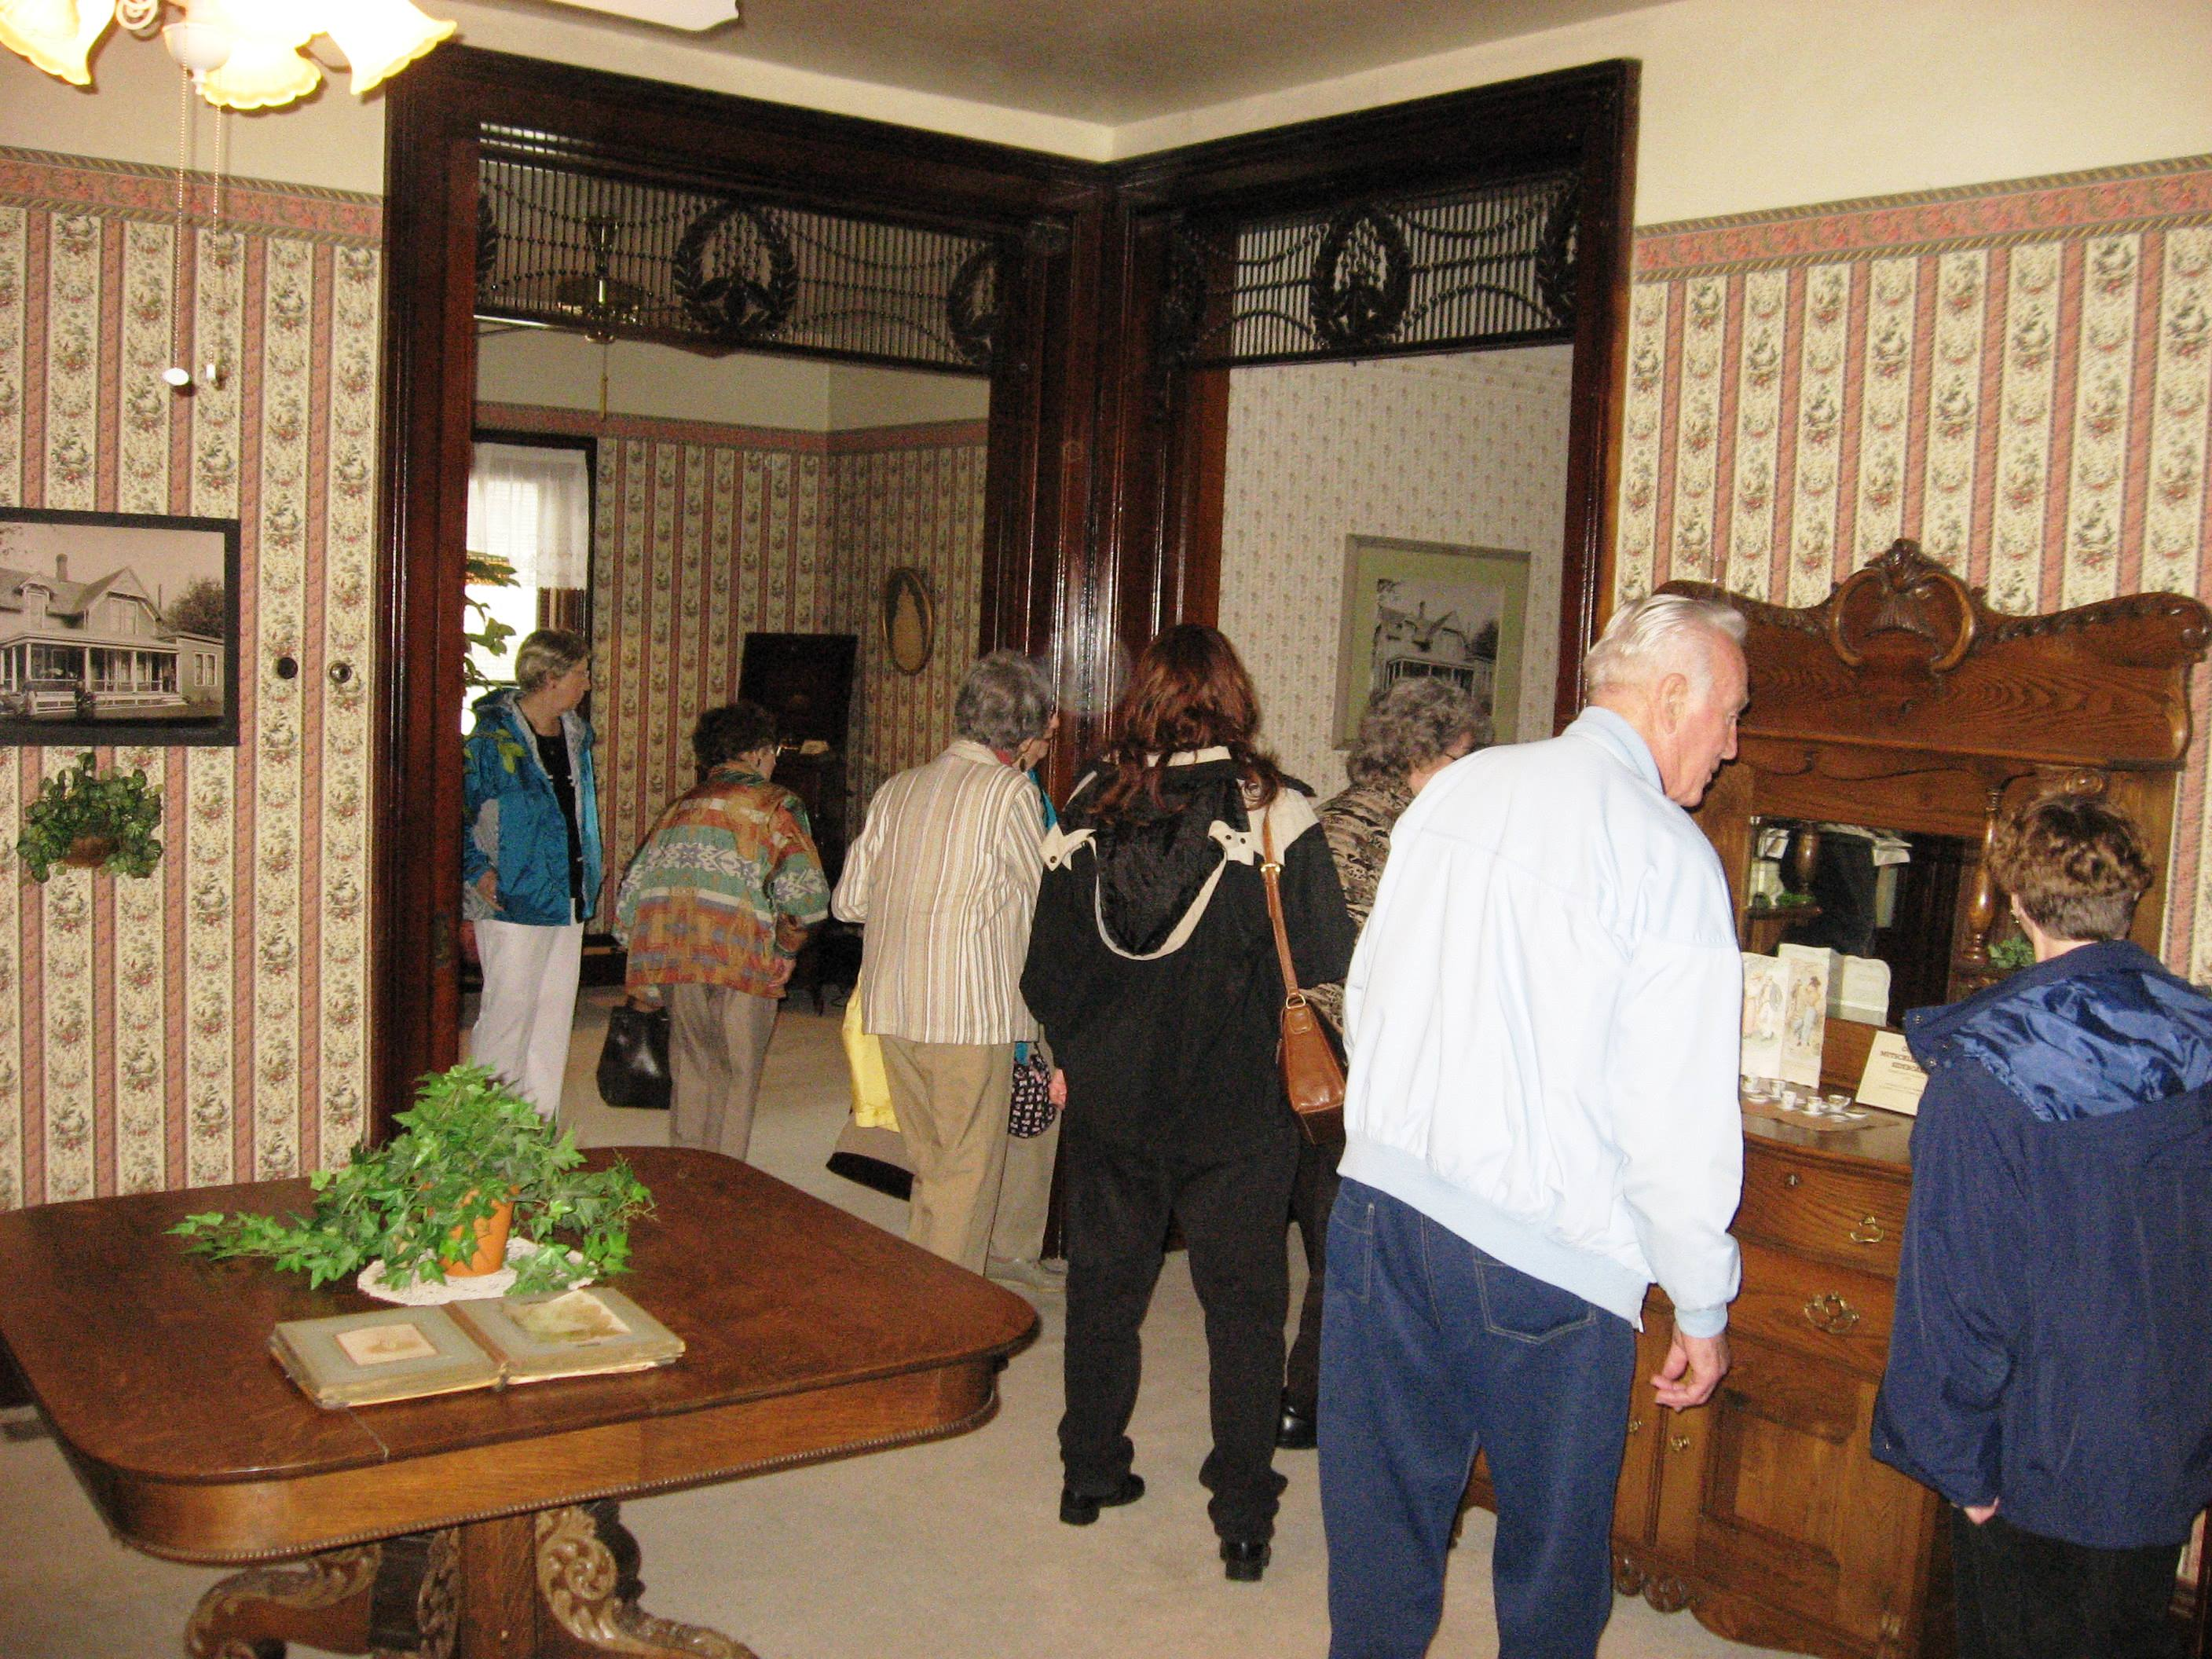 Visitors tour the 1898 John Hartman home, which is attached to the Nappanee Center.